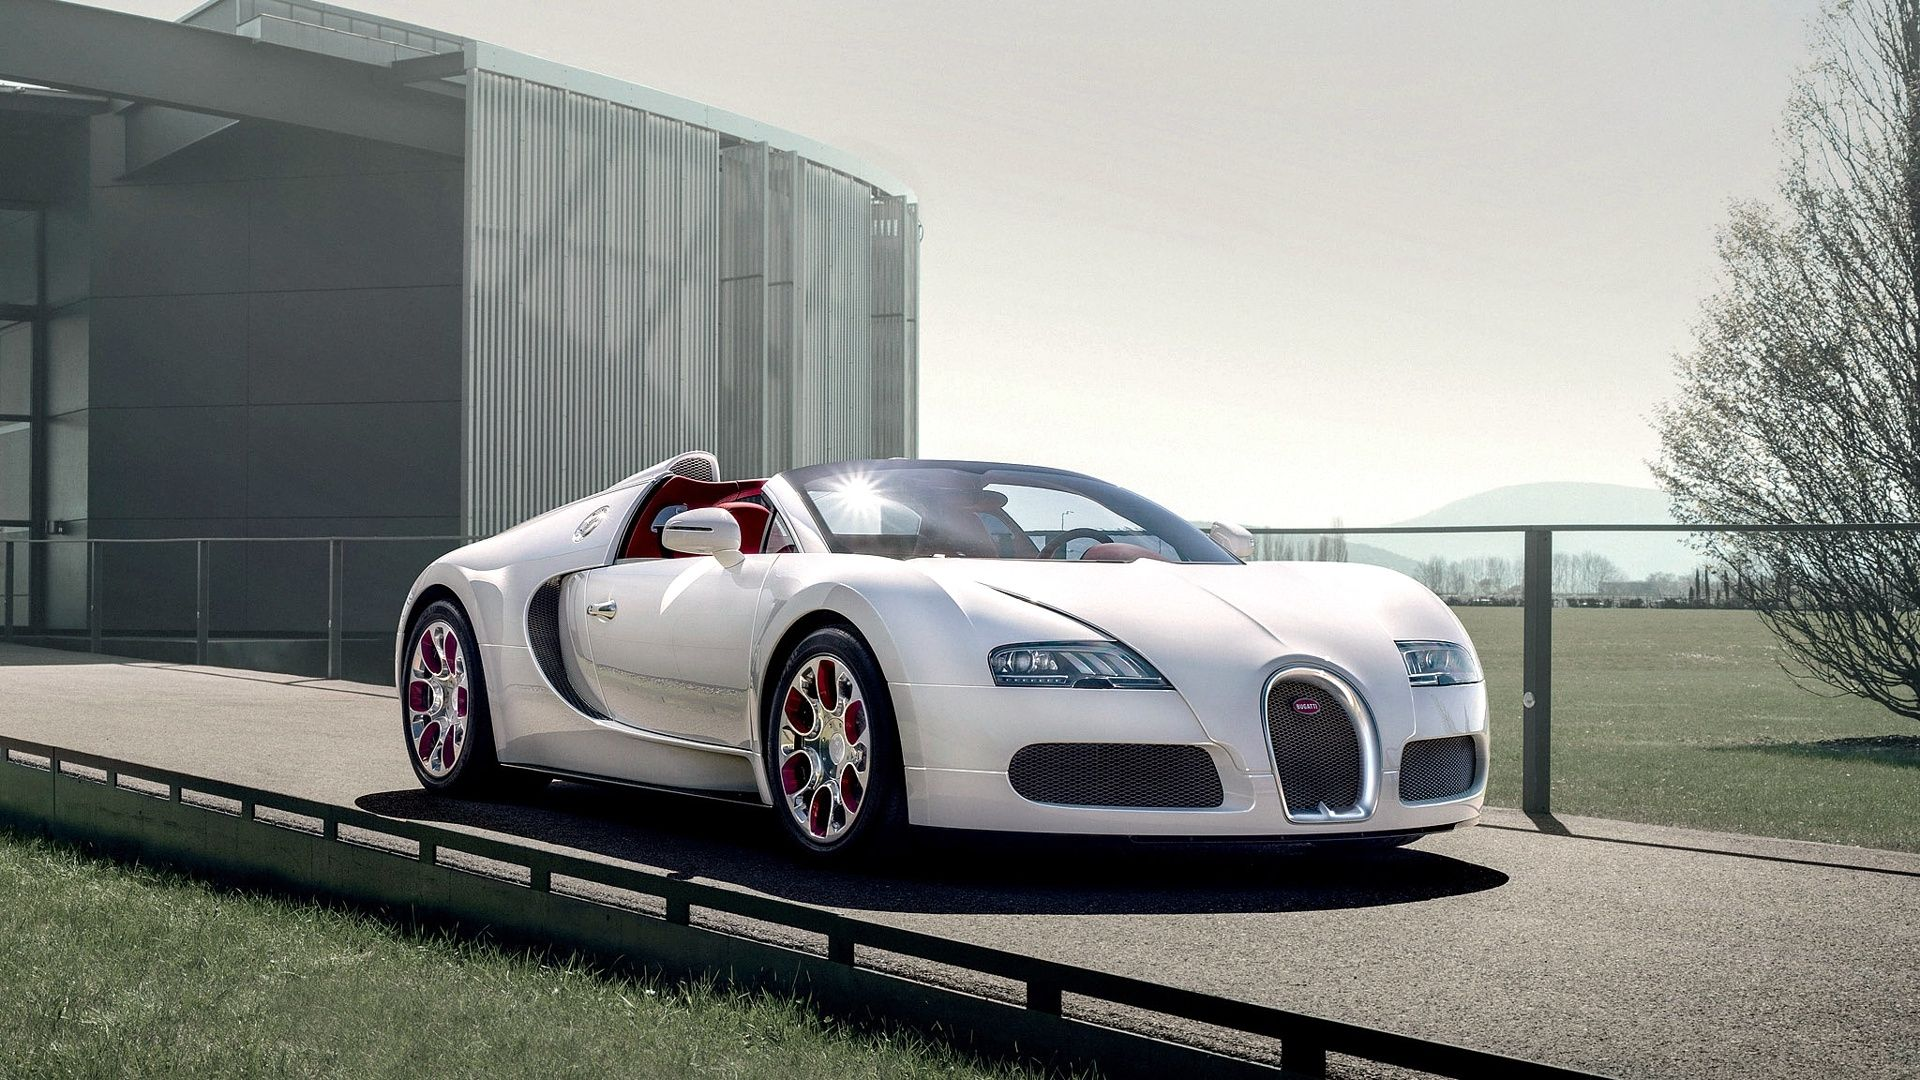 Gold Bugatti Veyron Car Wallpapers Top Free Gold Bugatti Veyron